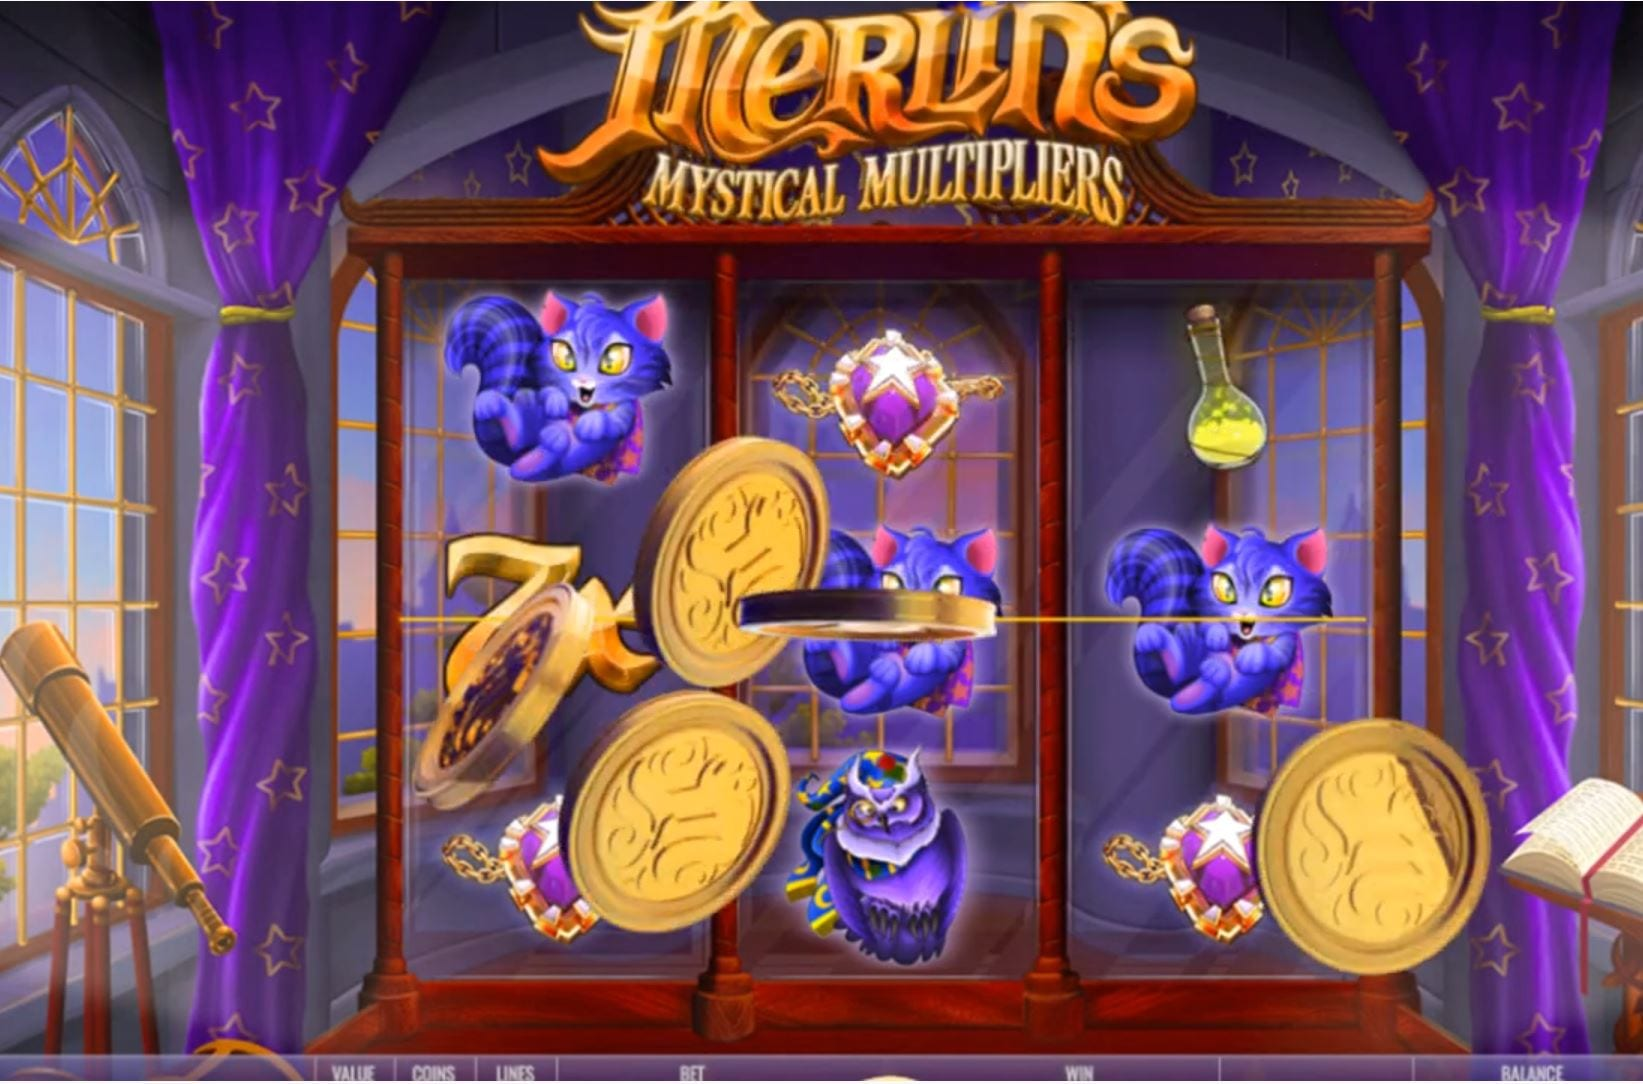 merlins ,mystical multipliers slot by rival